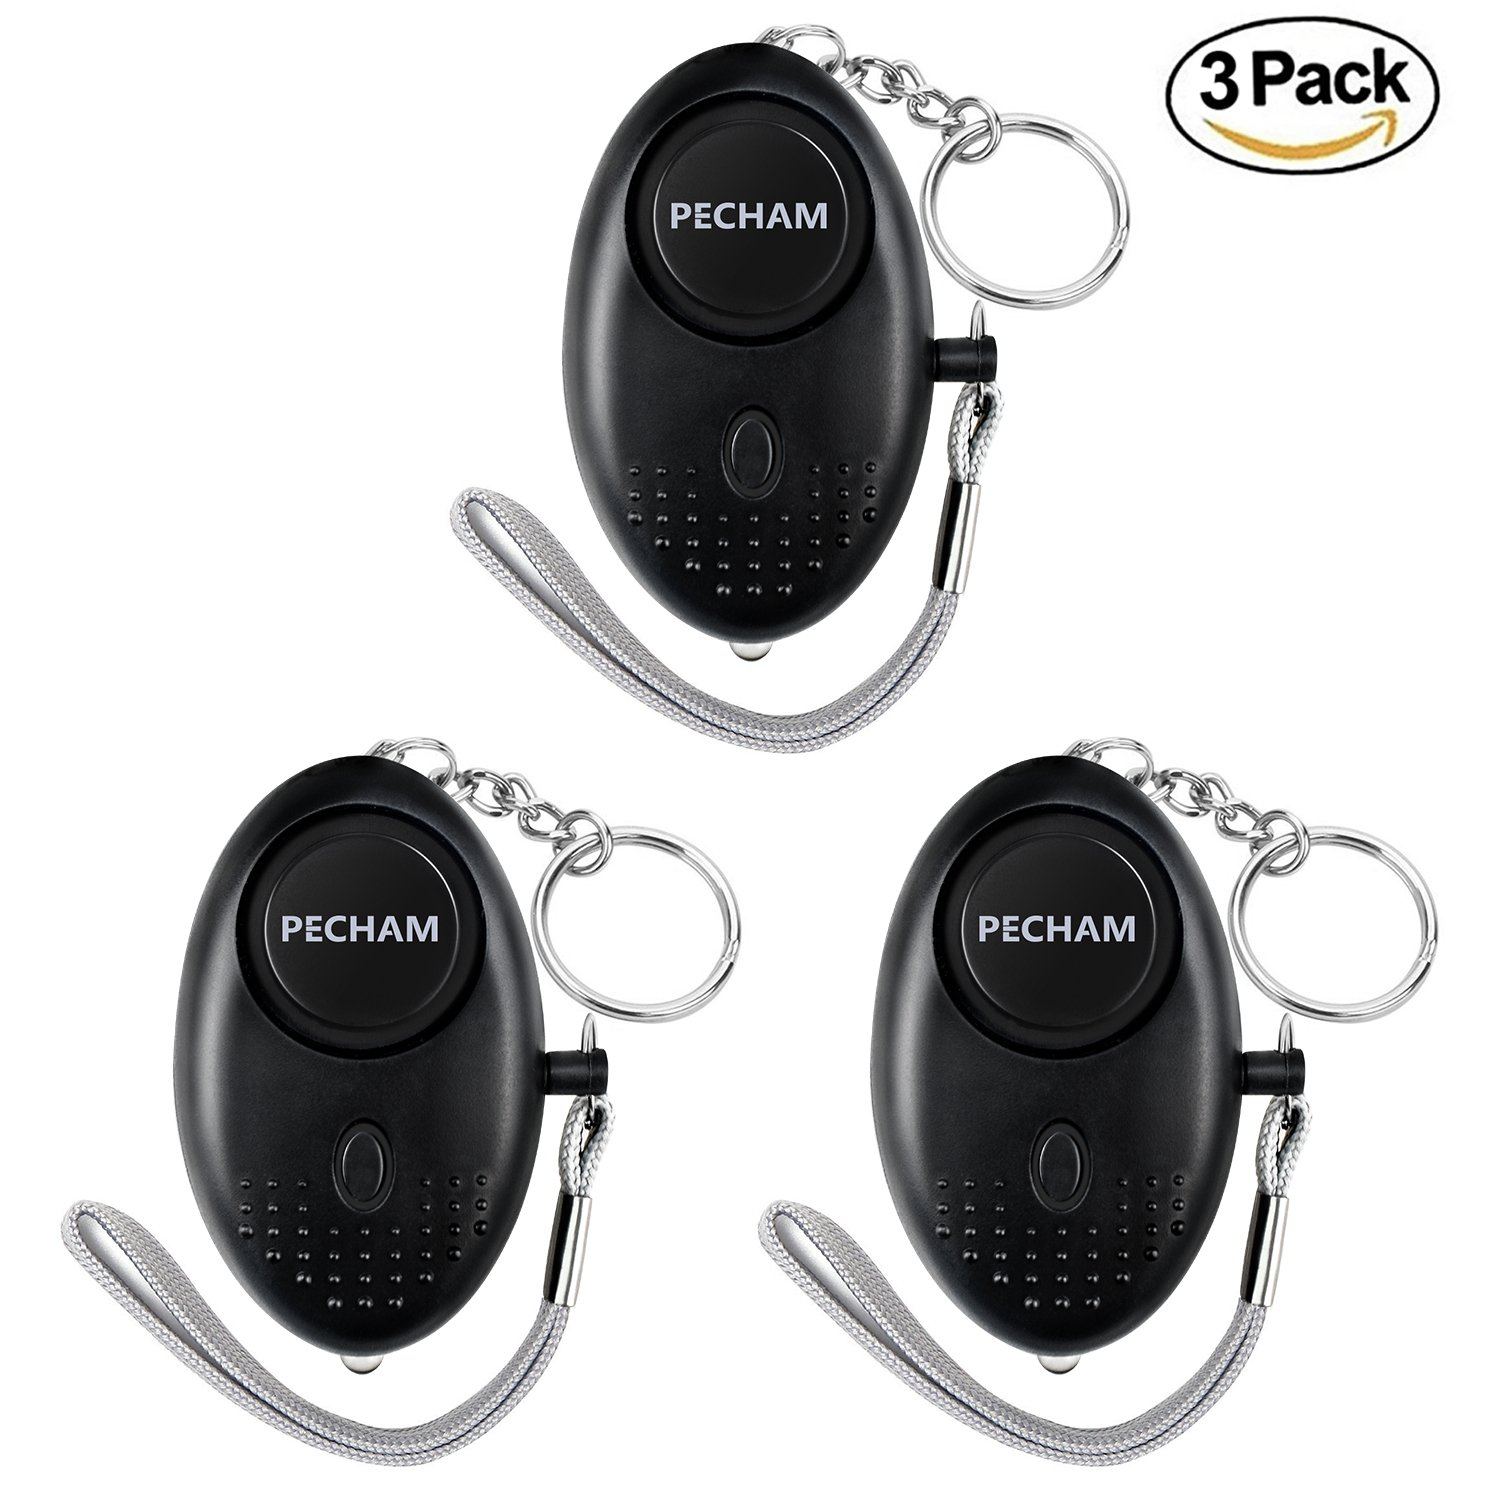 PECHAM 3Pack Safesound Personal Alarm Keychain, 130dB Personal Safety Alarms Women Self Defense, Personal Portable Security Alarms LED Lights by PECHAM (Image #1)